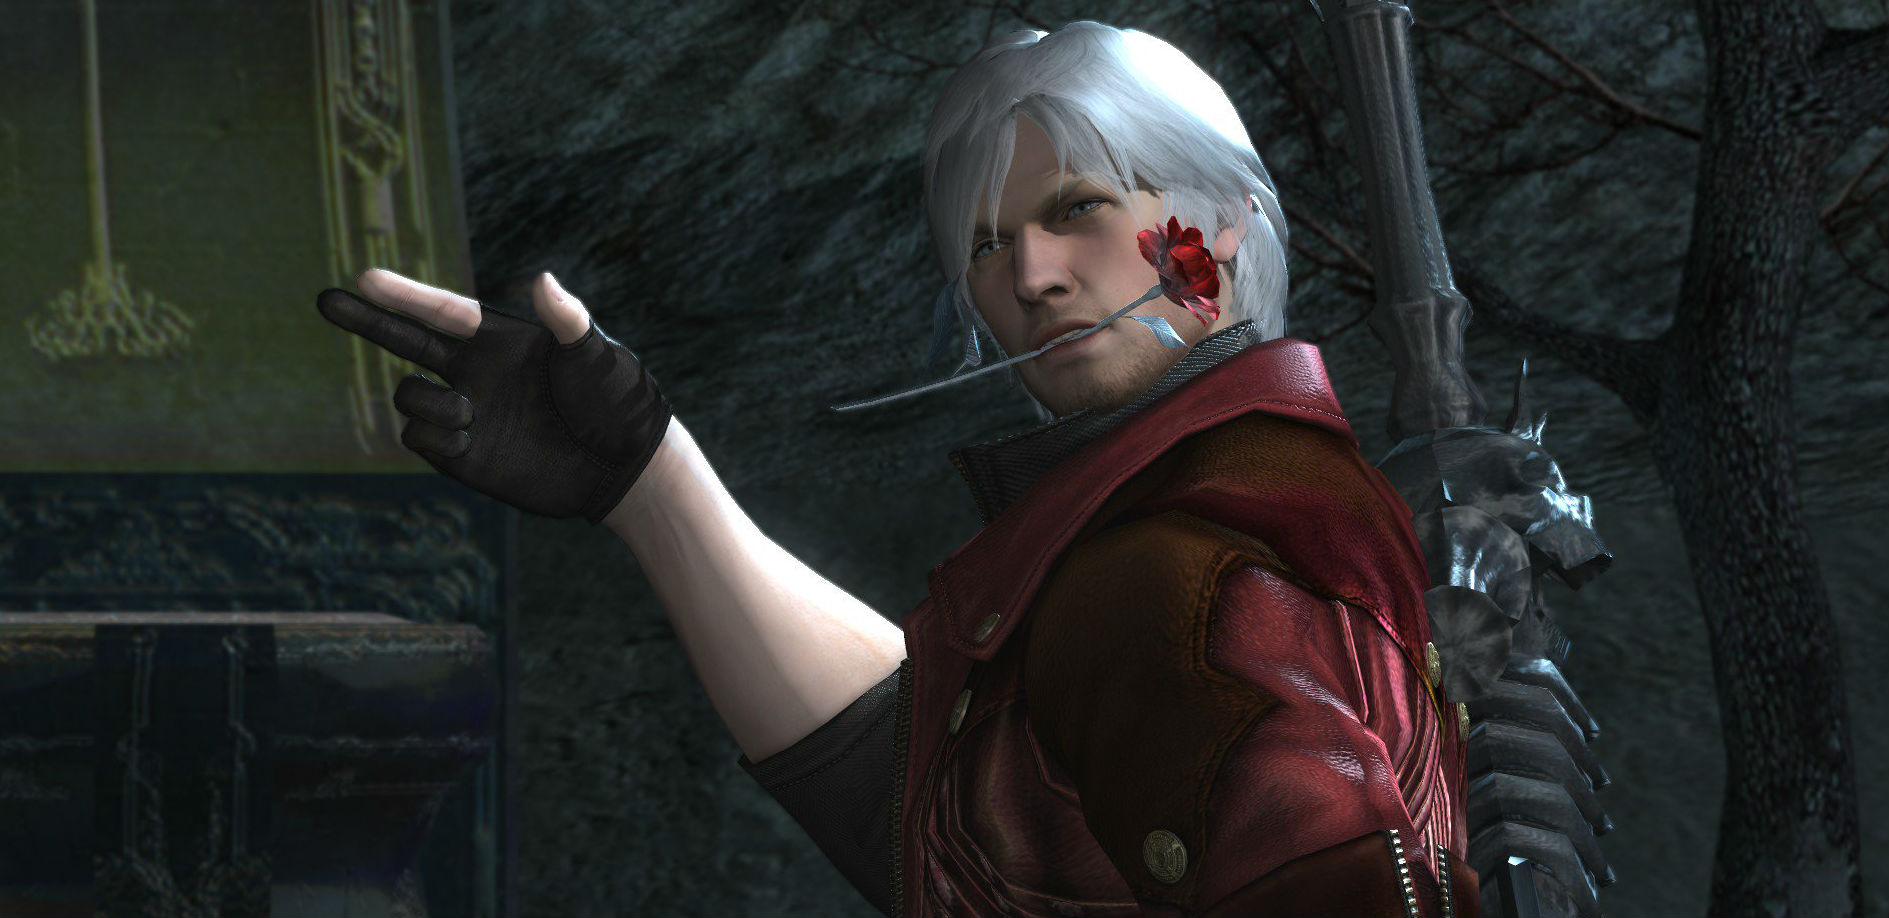 Devil May Cry is being adapted into a Japanese stage play screenshot